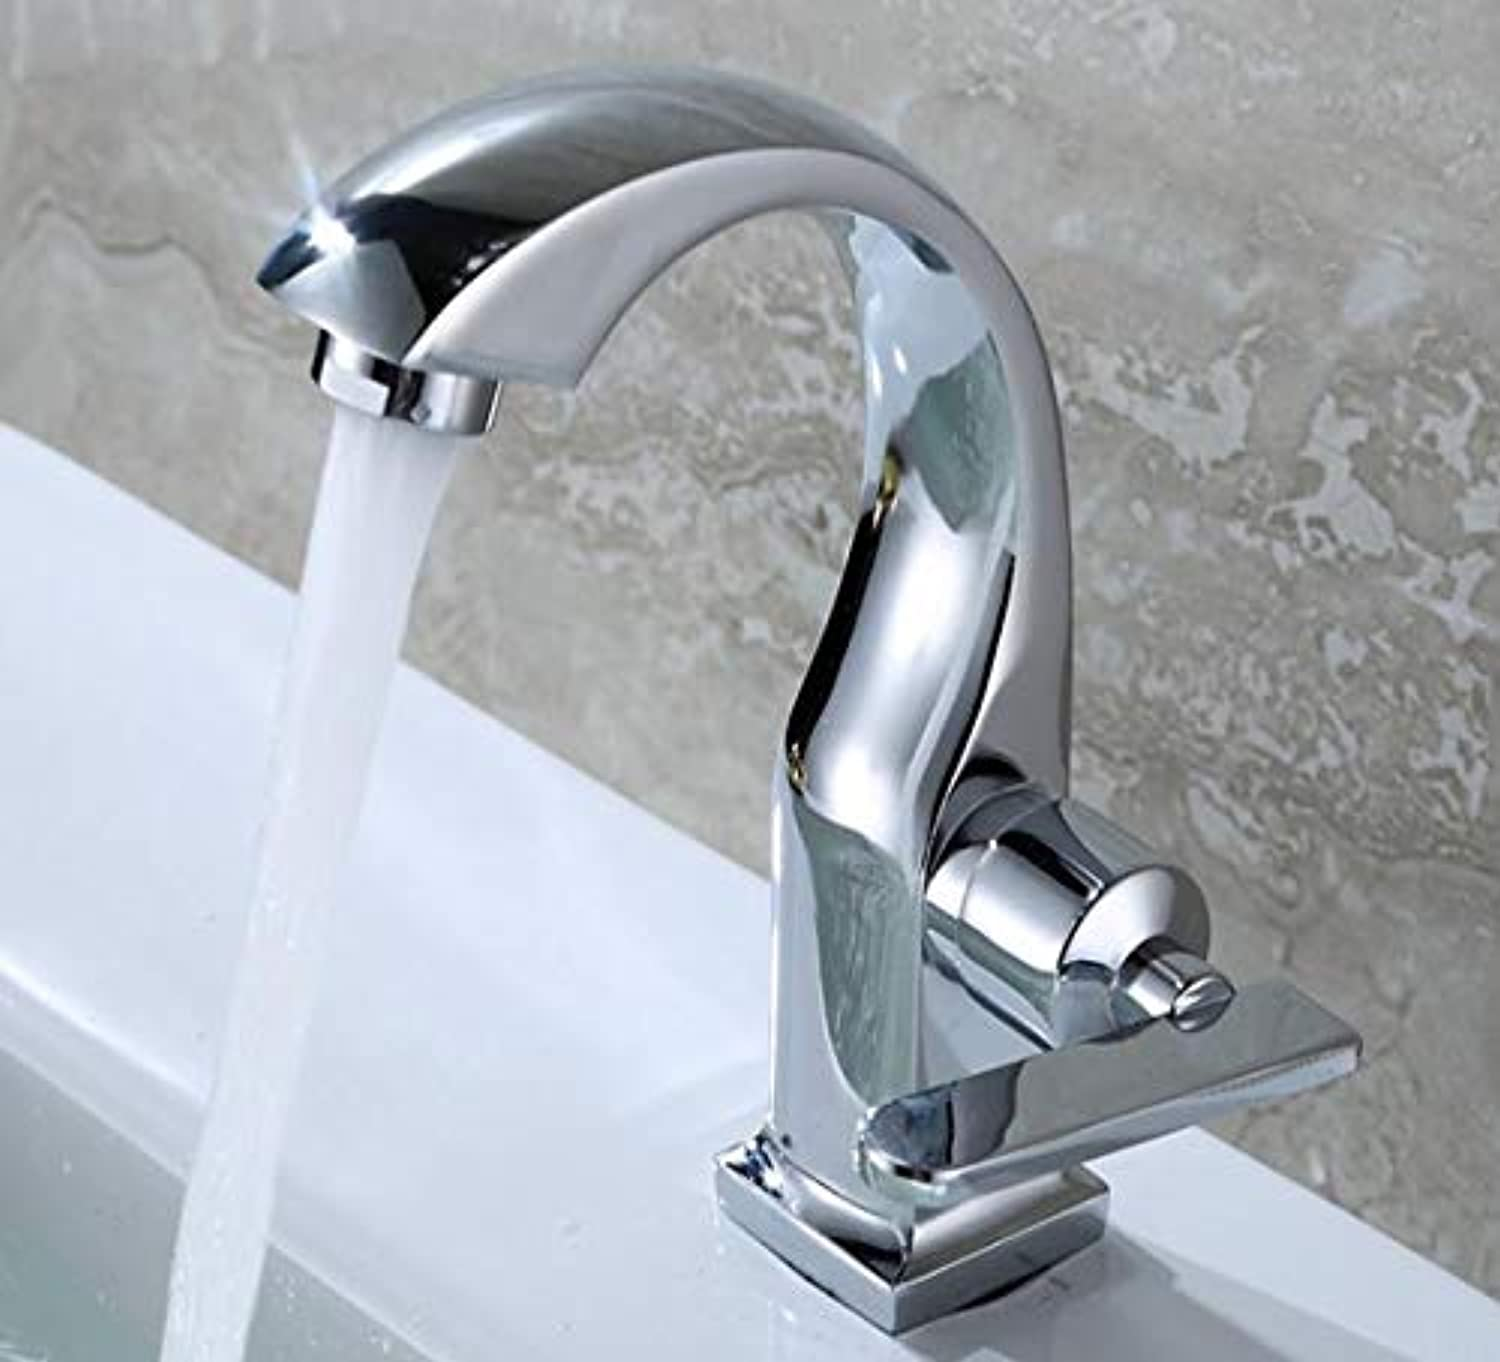 integrated drip tray and faucet. I don